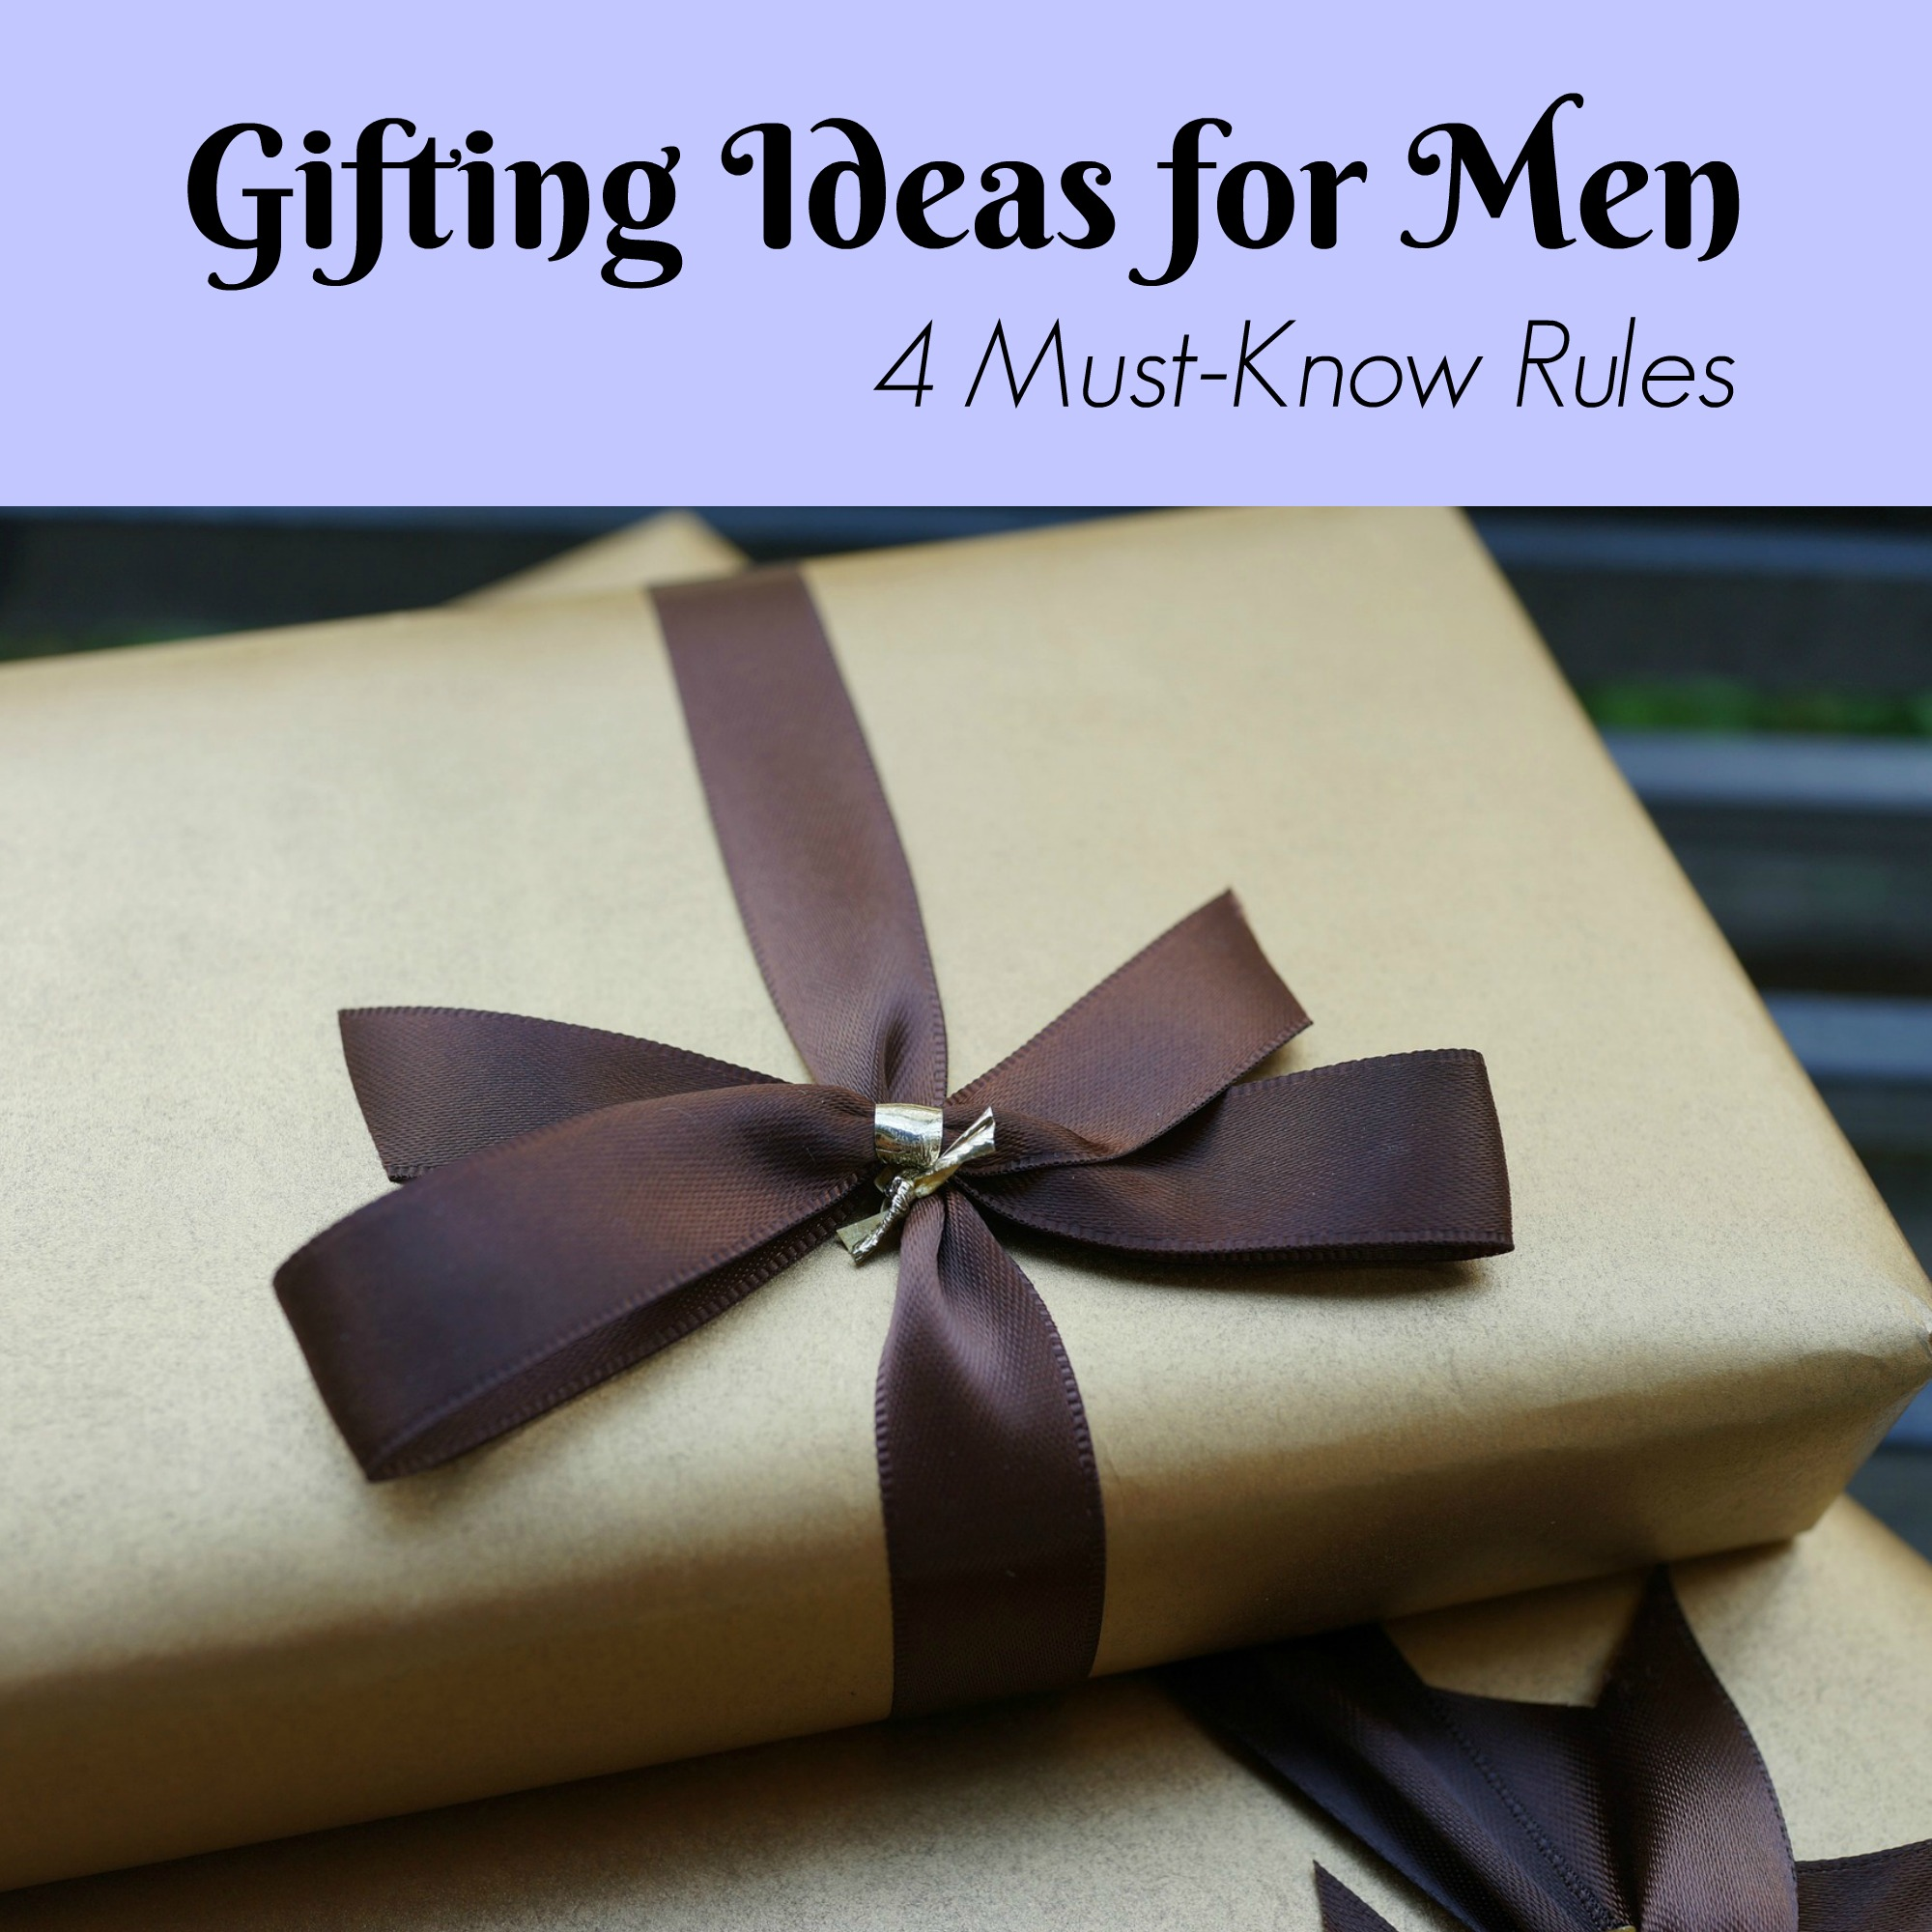 Gifting Ideas for Men